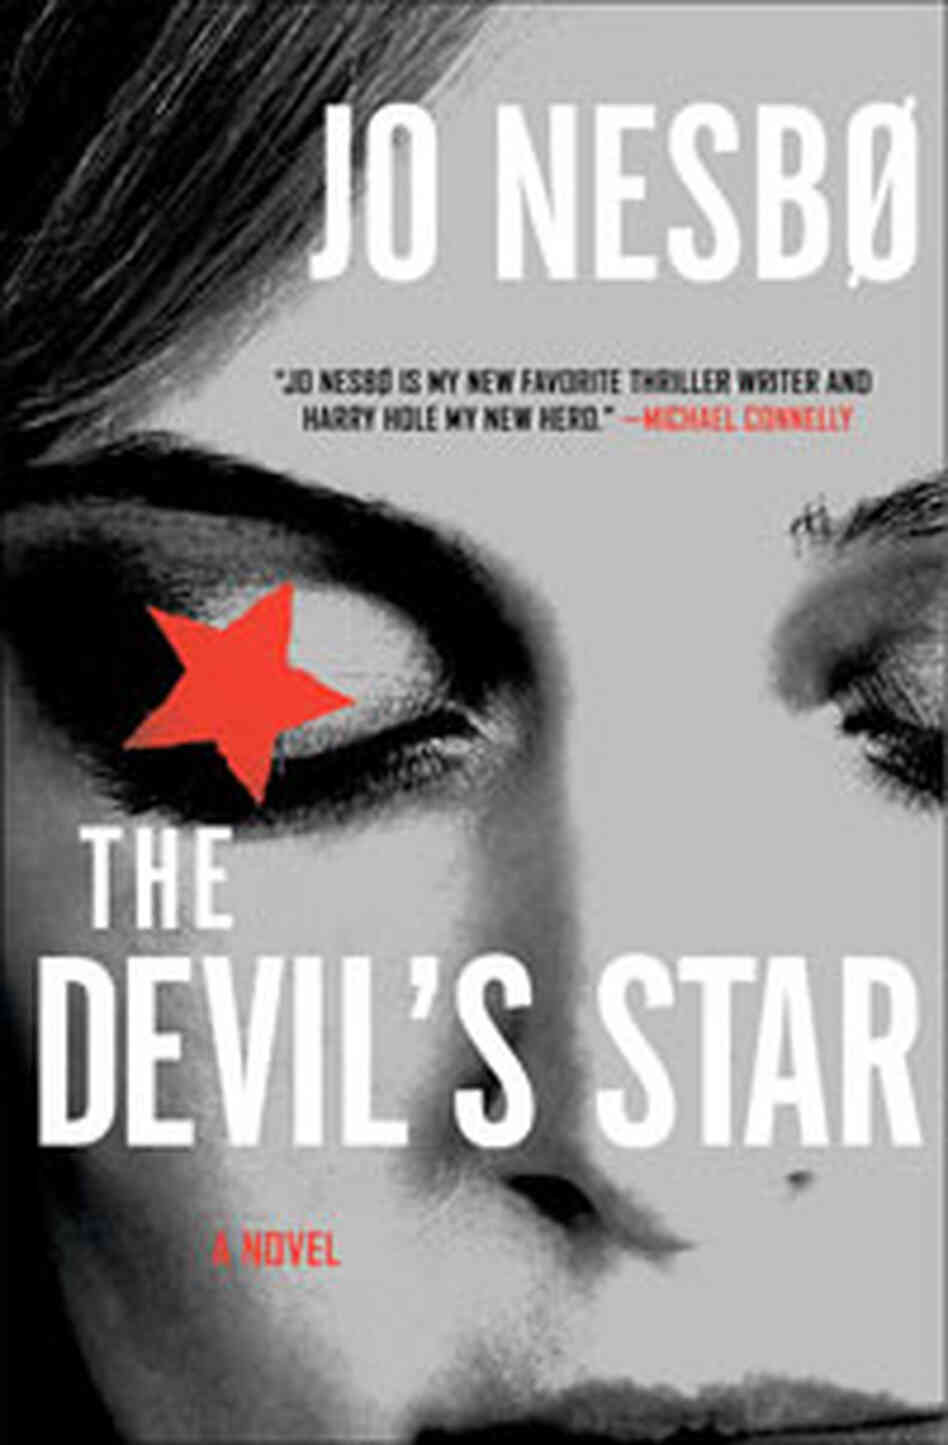 'The Devil's Star' book cover